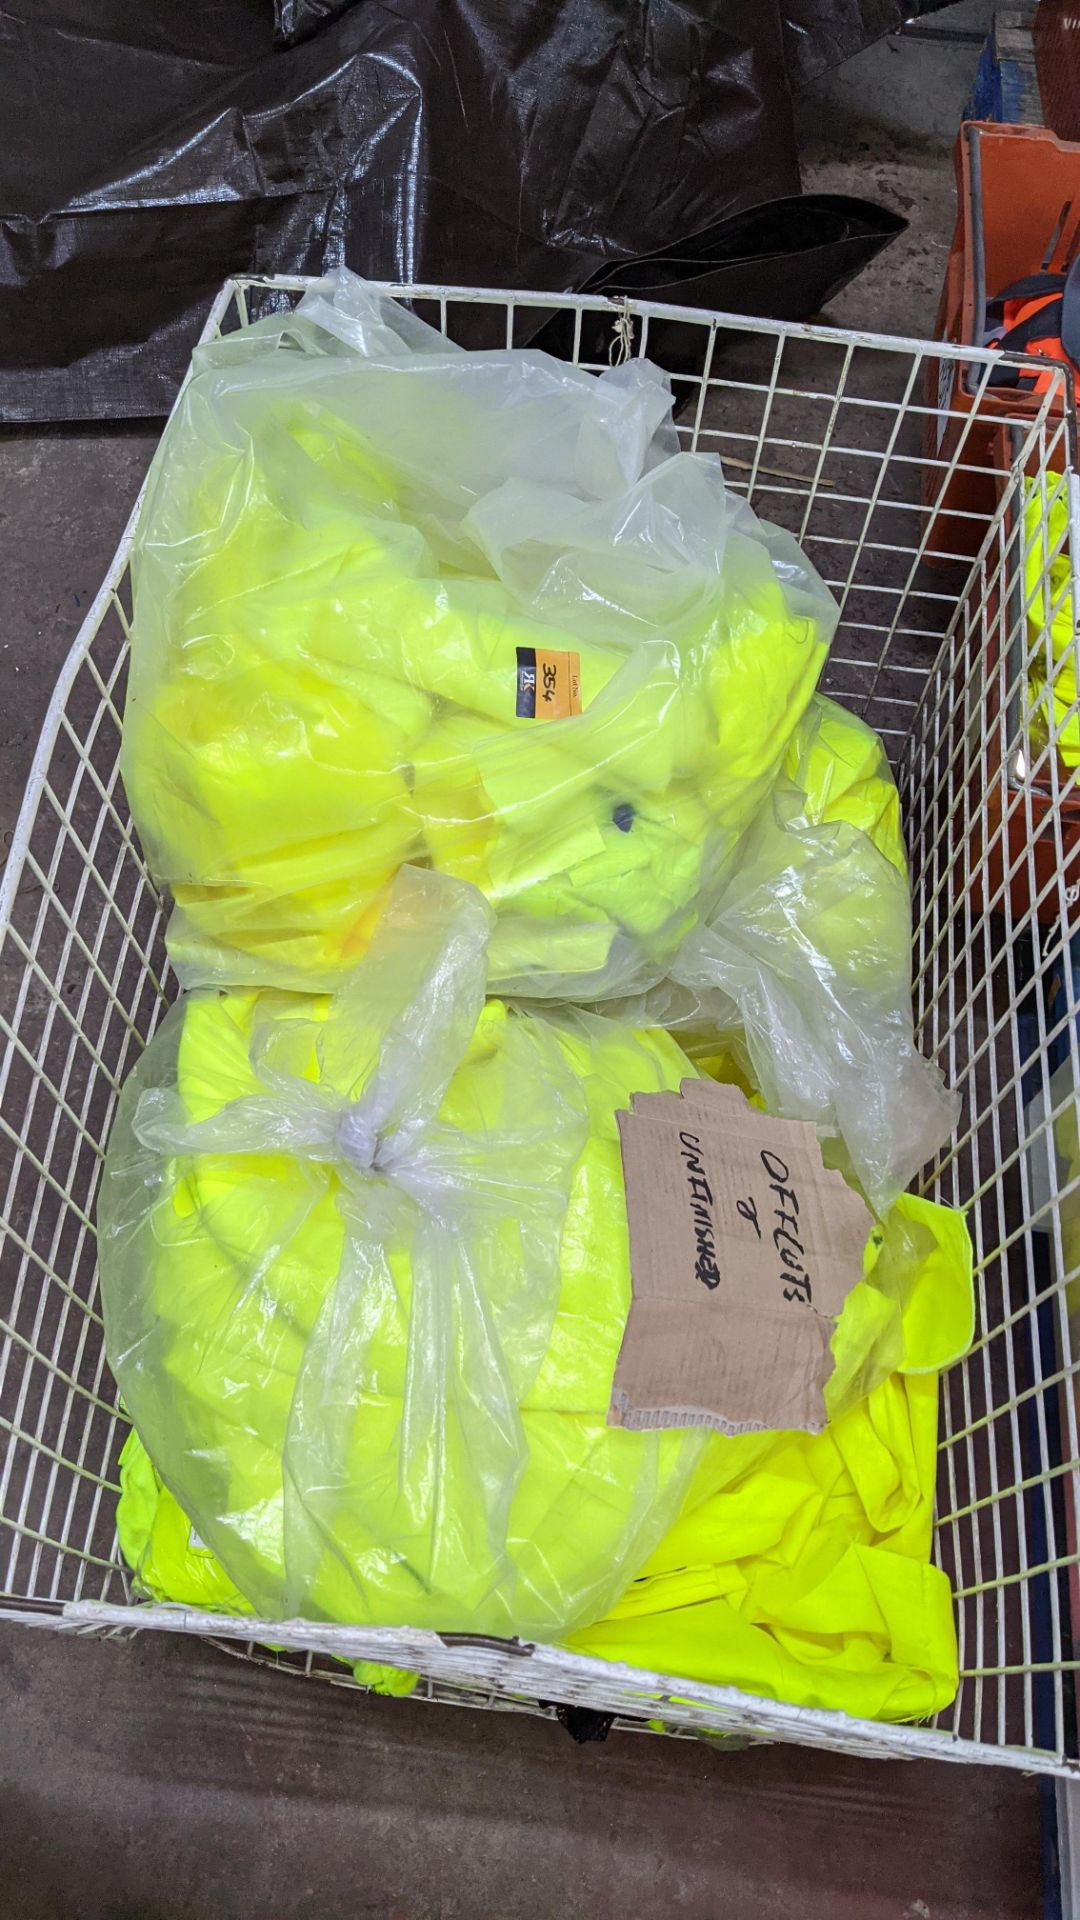 The contents of a cage of off-cuts & unfinished garments, all in yellow hi-vis fabrics. NB cage exc - Image 4 of 4